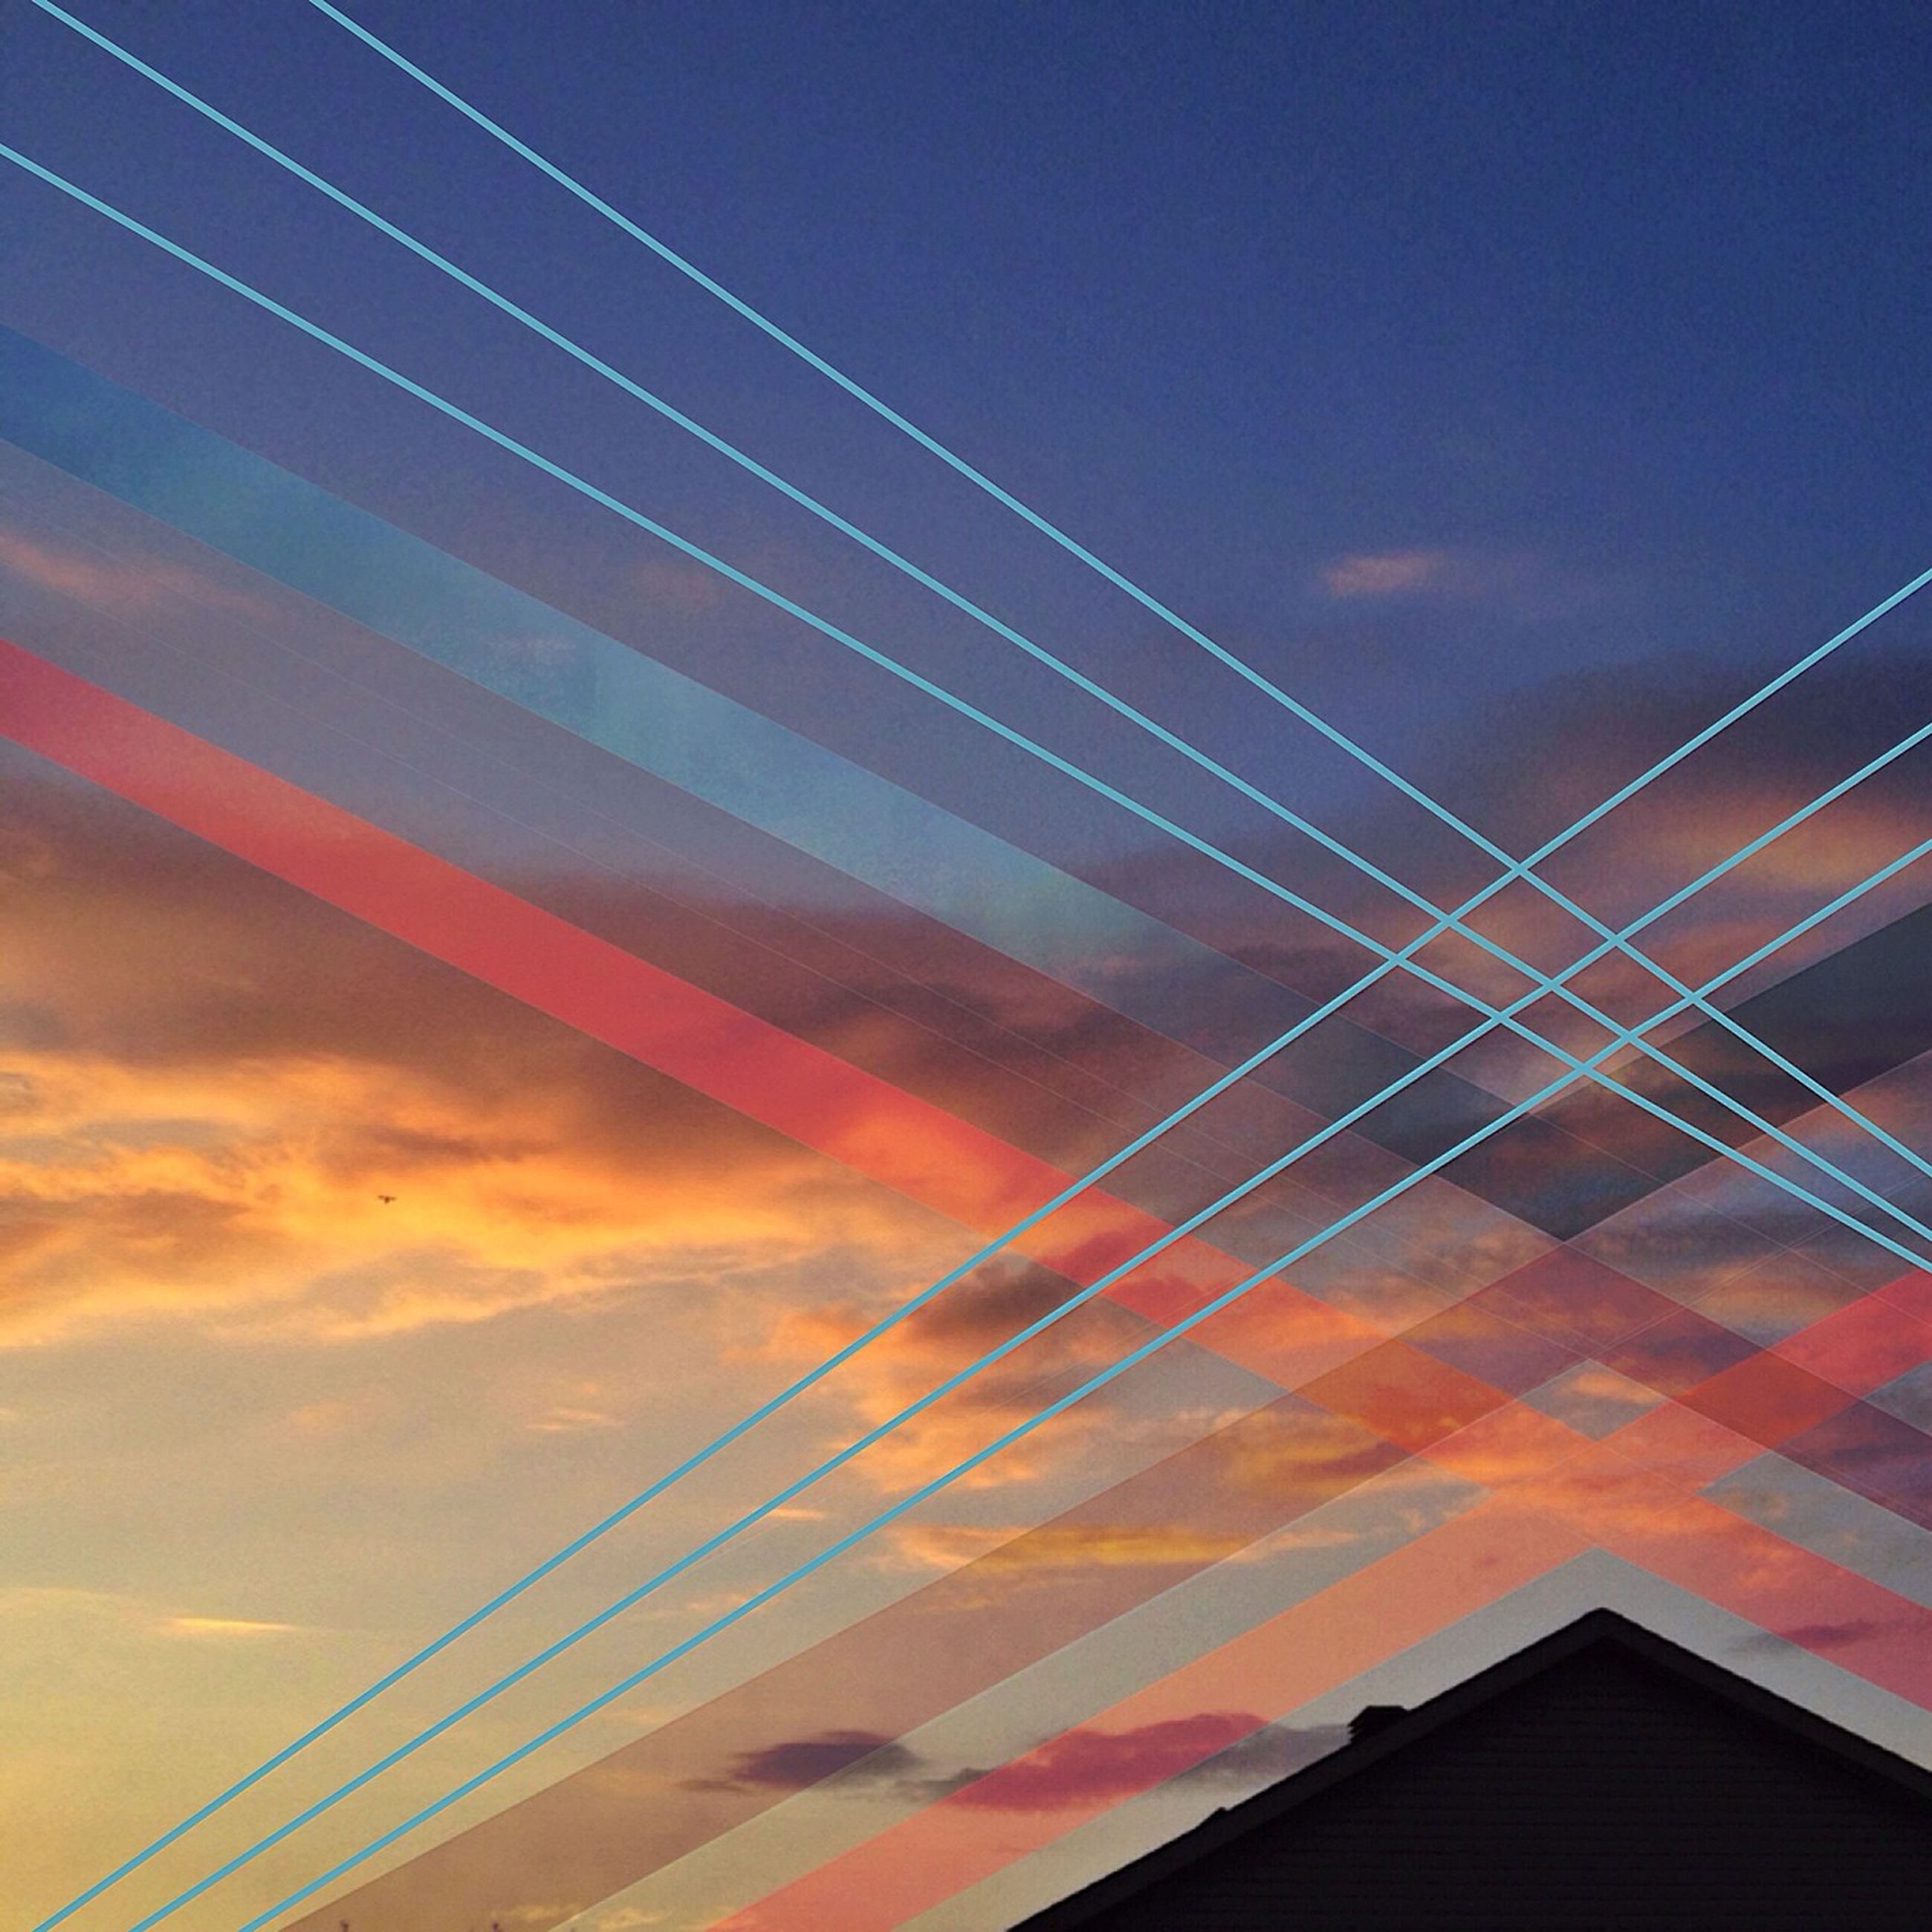 low angle view, built structure, architecture, sky, connection, building exterior, sunset, cloud - sky, bridge - man made structure, cable, blue, no people, outdoors, cloud, orange color, city, vapor trail, high section, modern, dusk